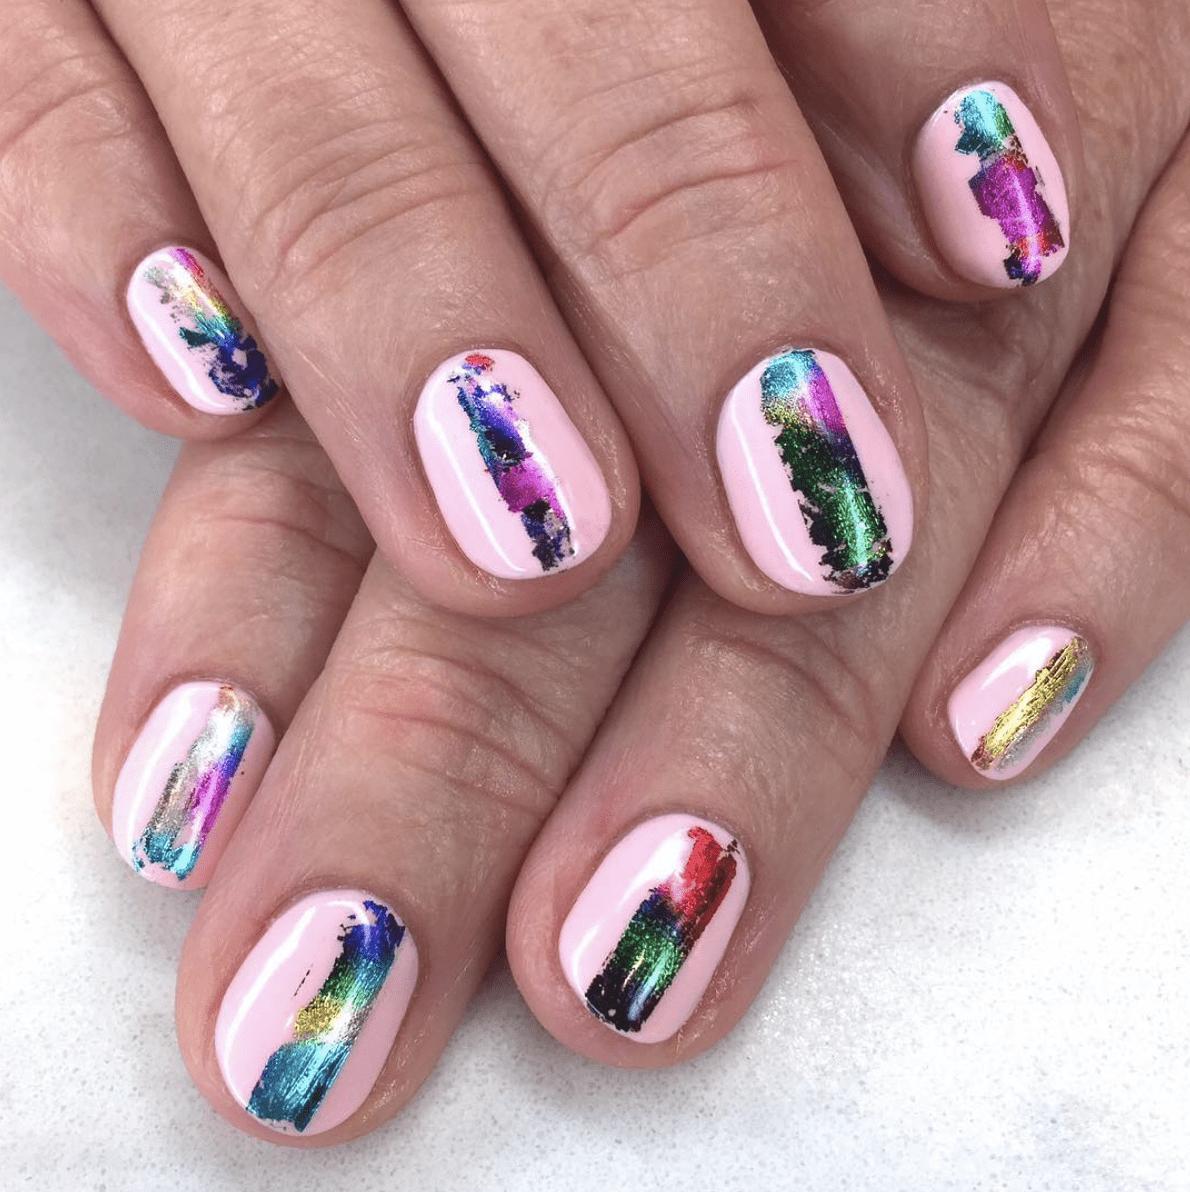 7 Of The Best High End Nail Salons In Toronto (With Dope ...